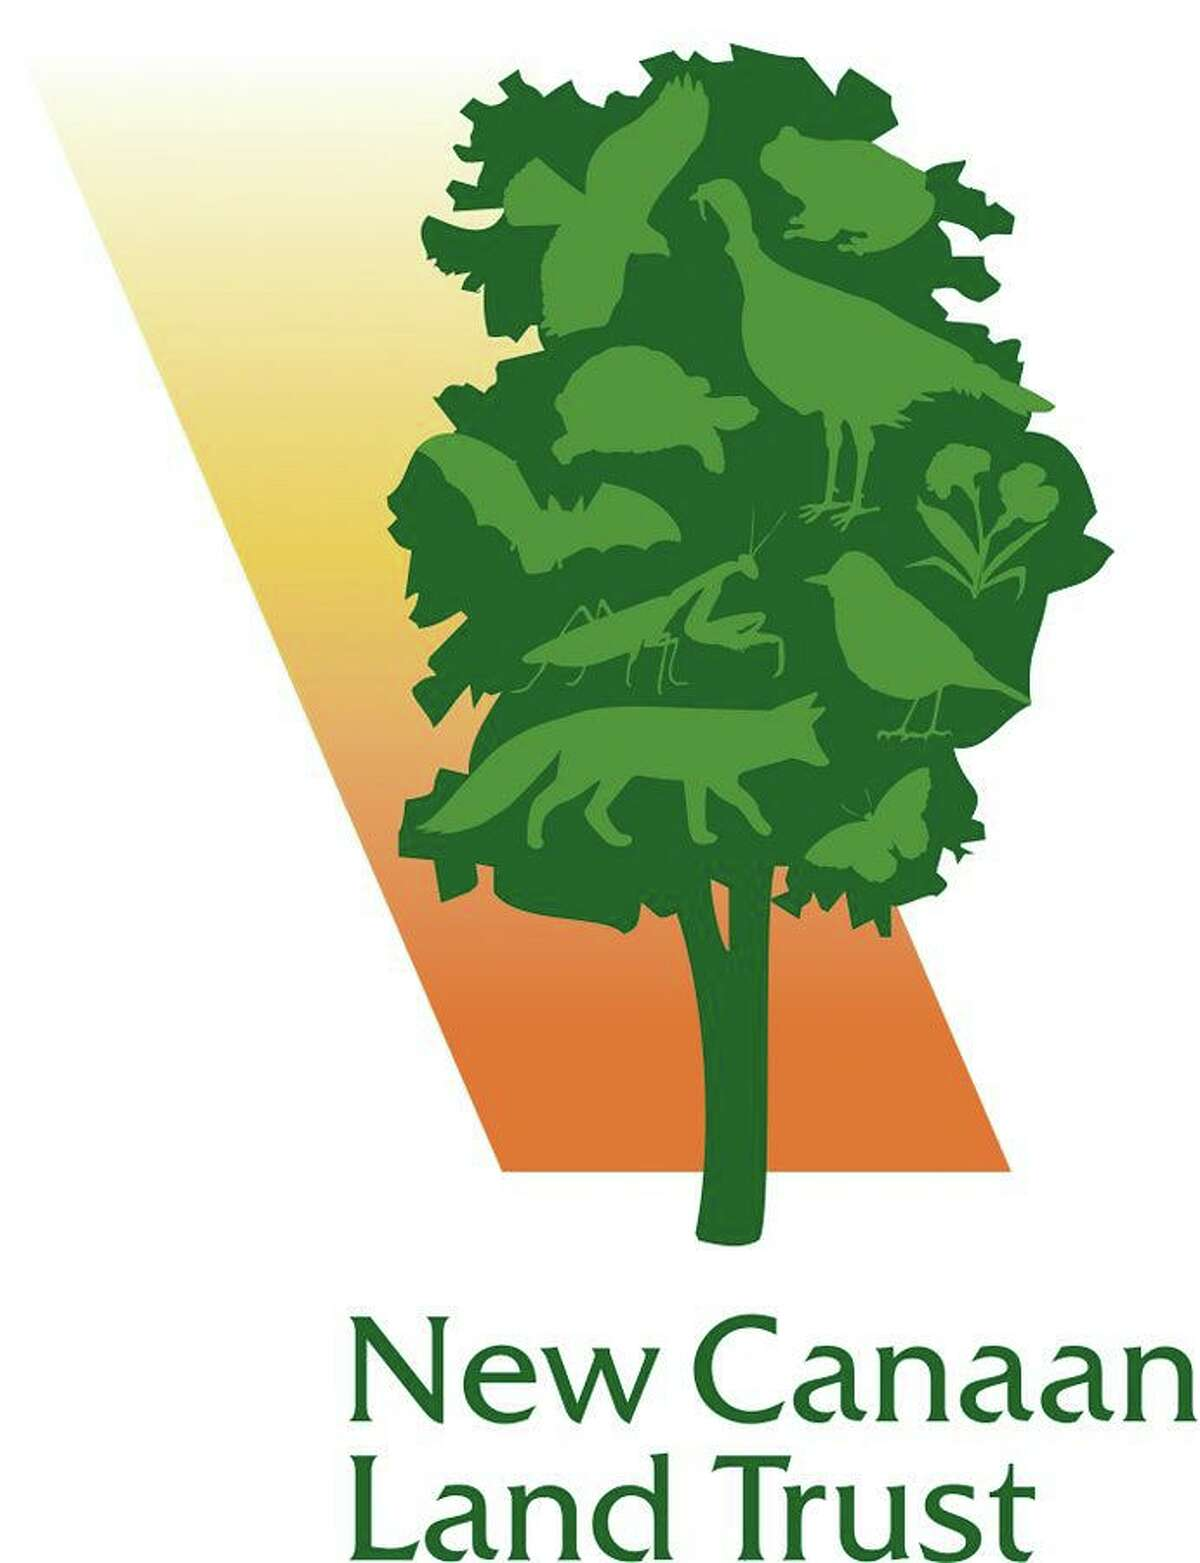 The New Canaan Land Trust announced the creation of two seasonal jobs, geared towards young adults.